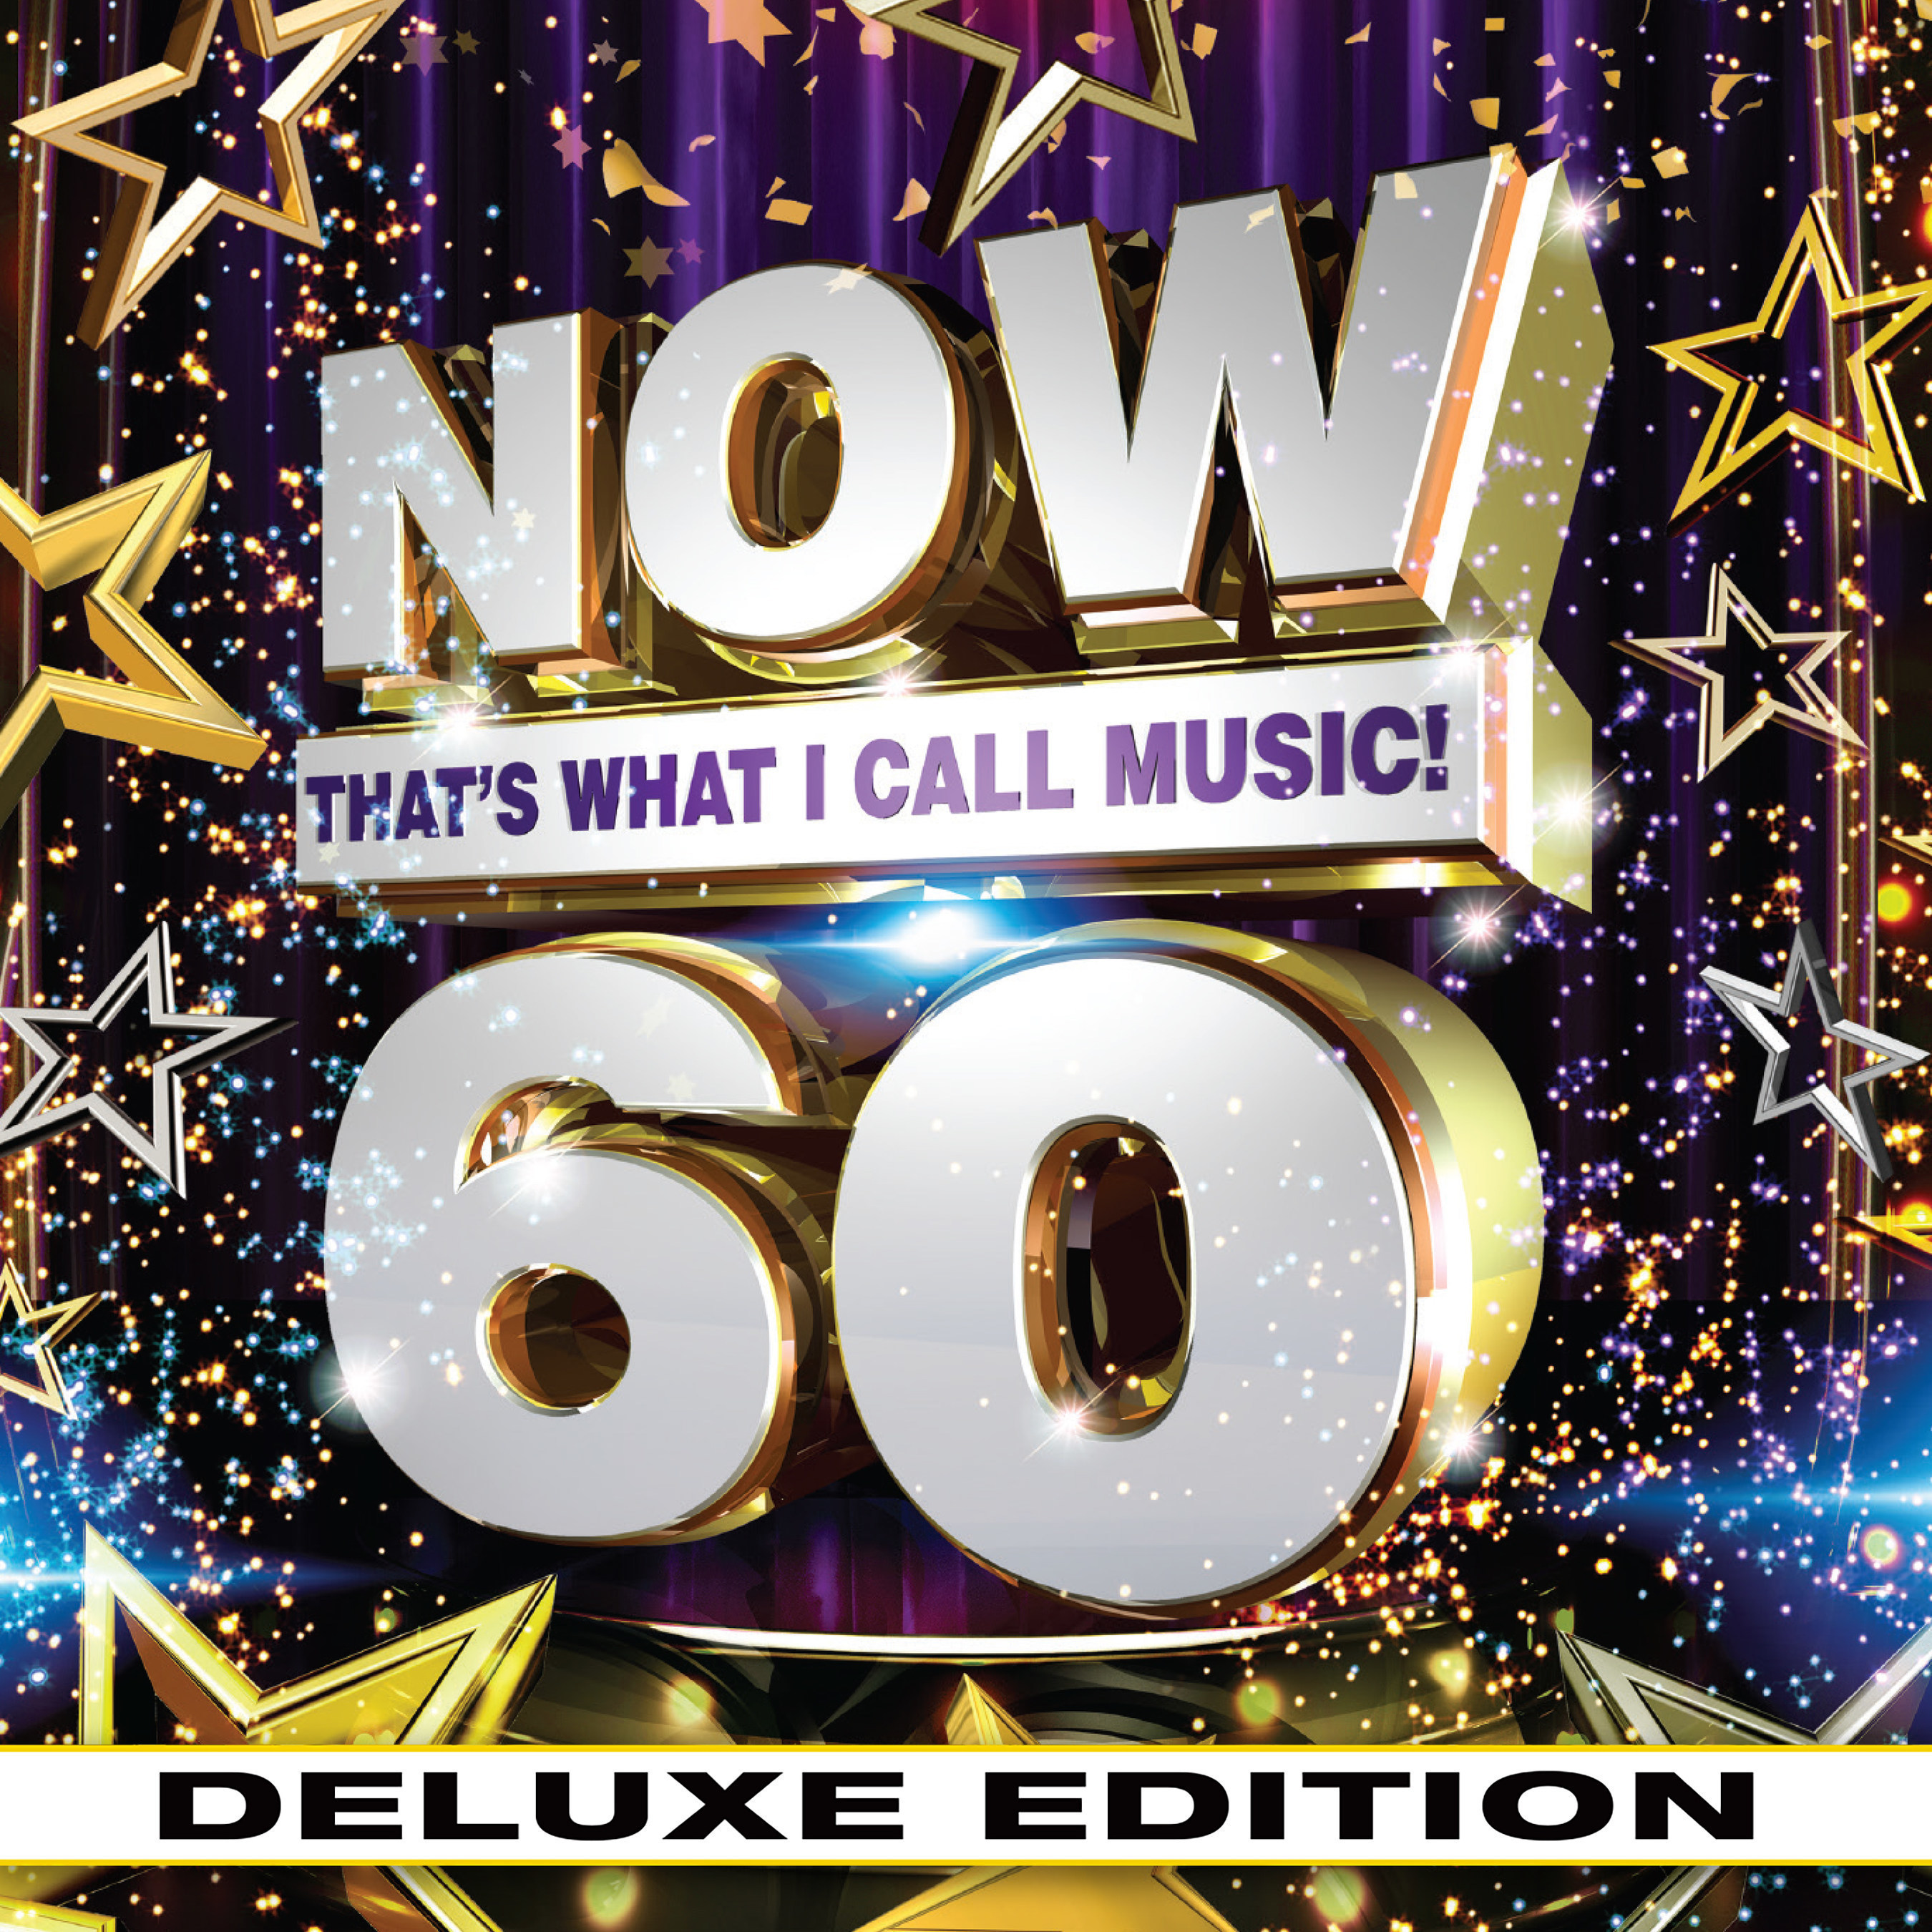 NOW THAT'S WHAT I CALL MUSIC! CELEBRATES 60TH NUMBERED VOLUME WITH EXPANDED DELUXE EDITION